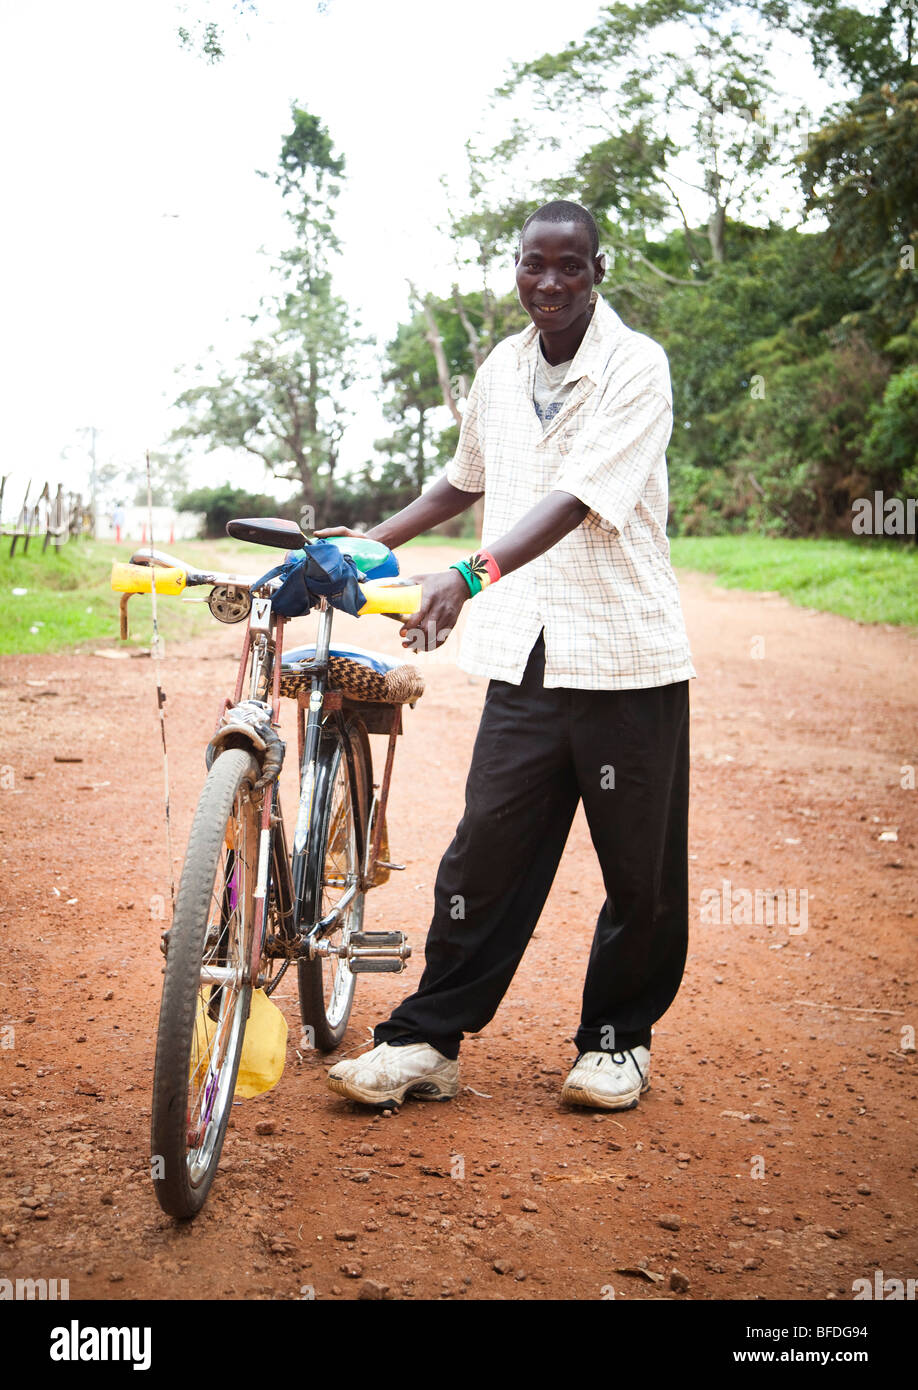 A taxi bicyclist shows off his bike in the city of Butare, Rwanda. Stock Photo